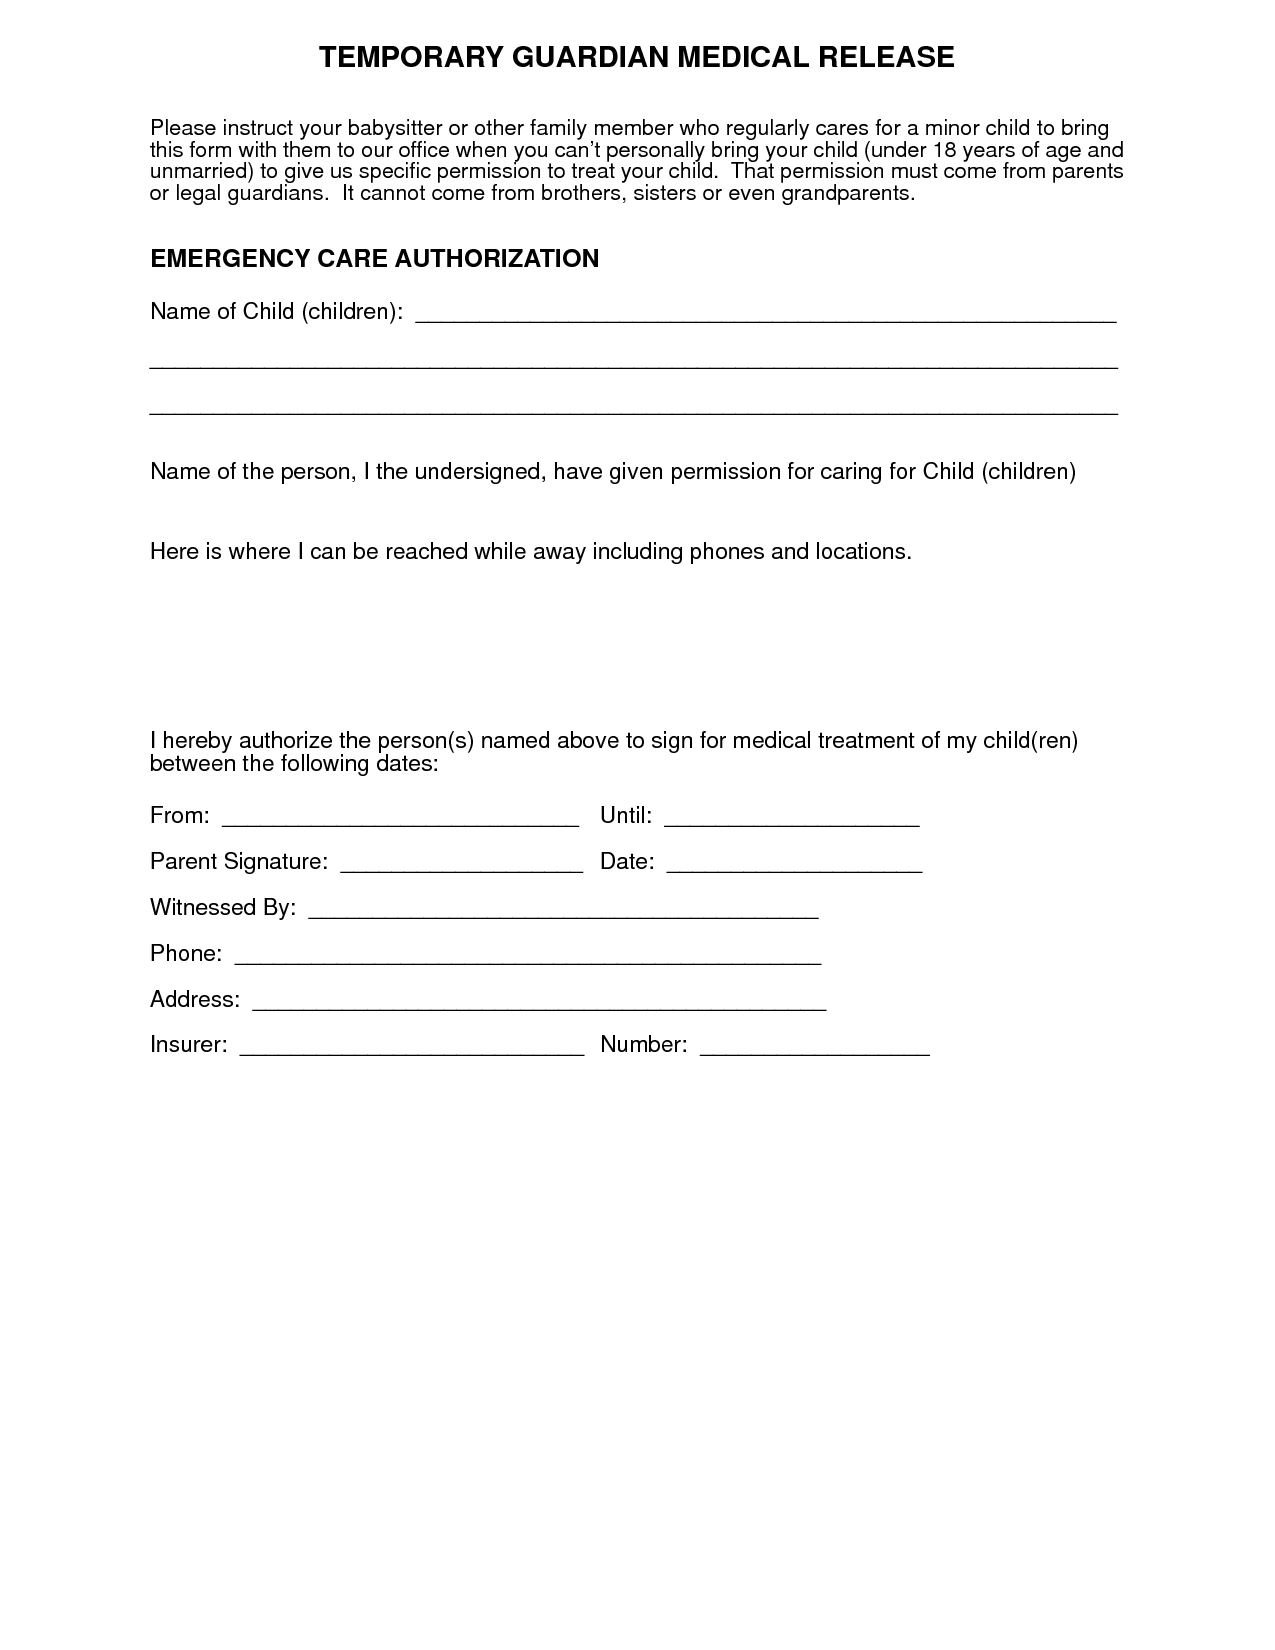 Medical+Authorization+Form+for+Grandparents | For More Medical Release Form  Grandparents Photo